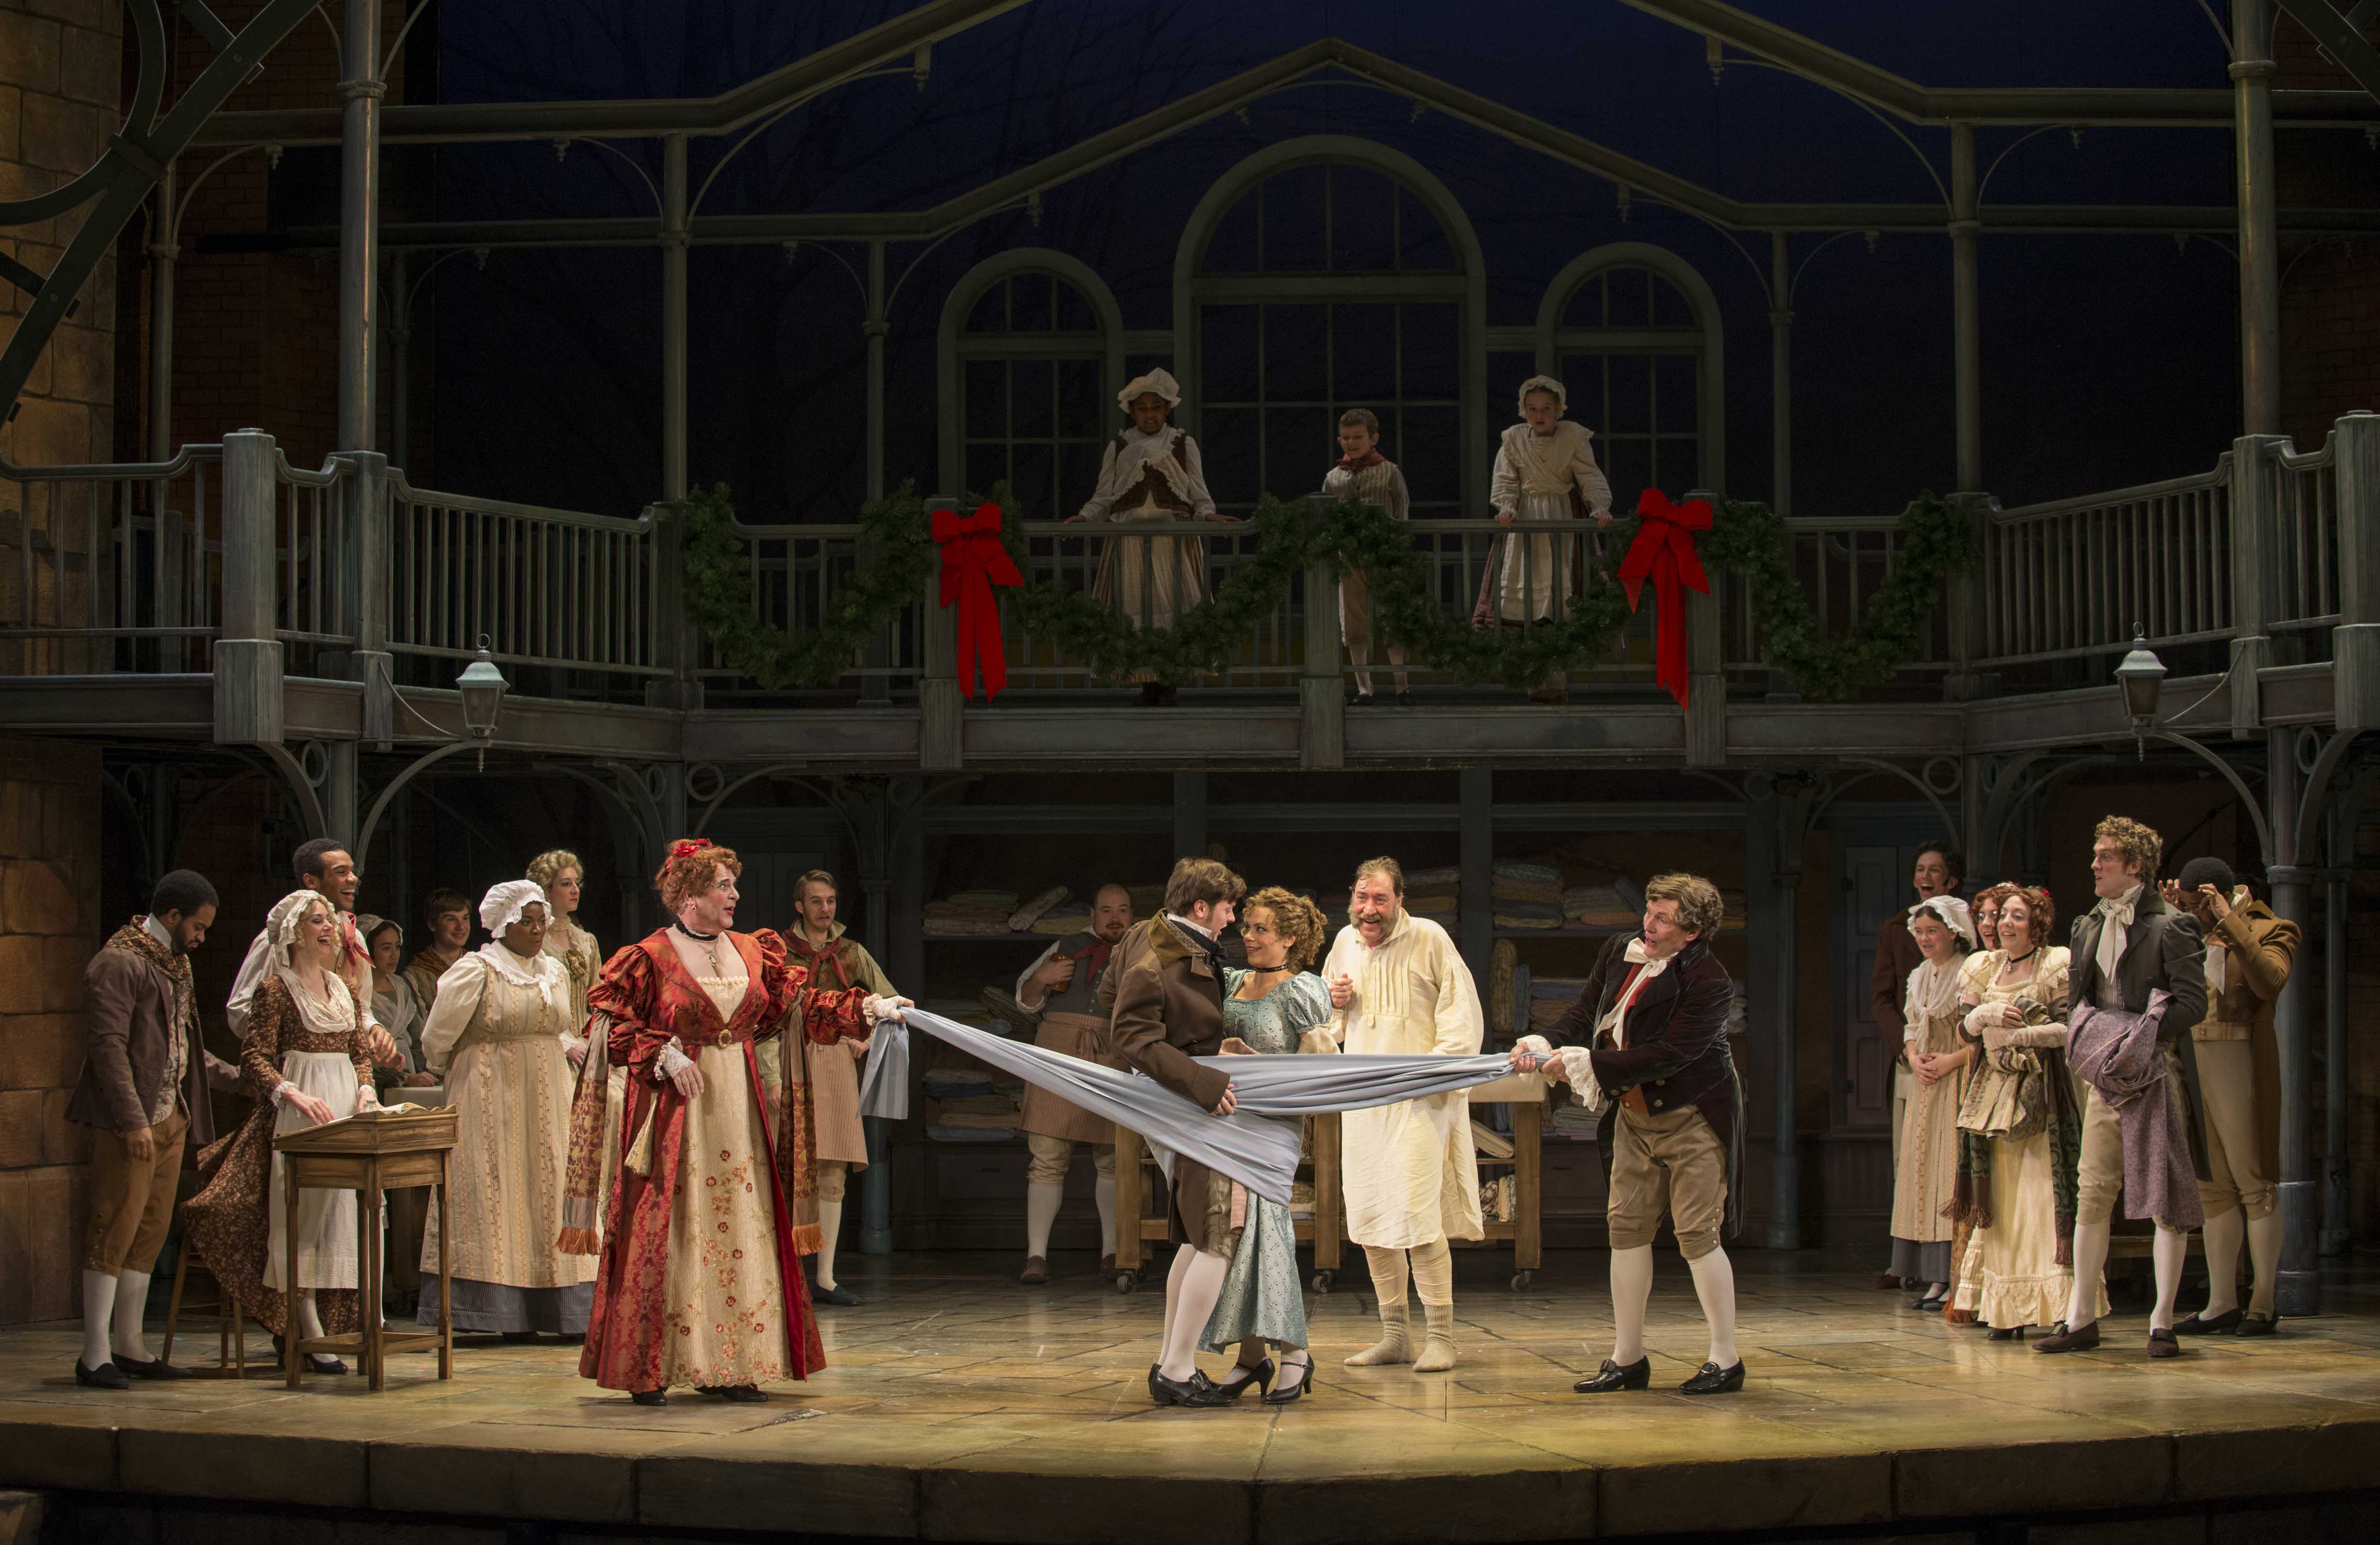 A scene from Milwaukee Repertory Theater's 2013/14 production of A Christmas Carol. Photo by Michael Brosilow.